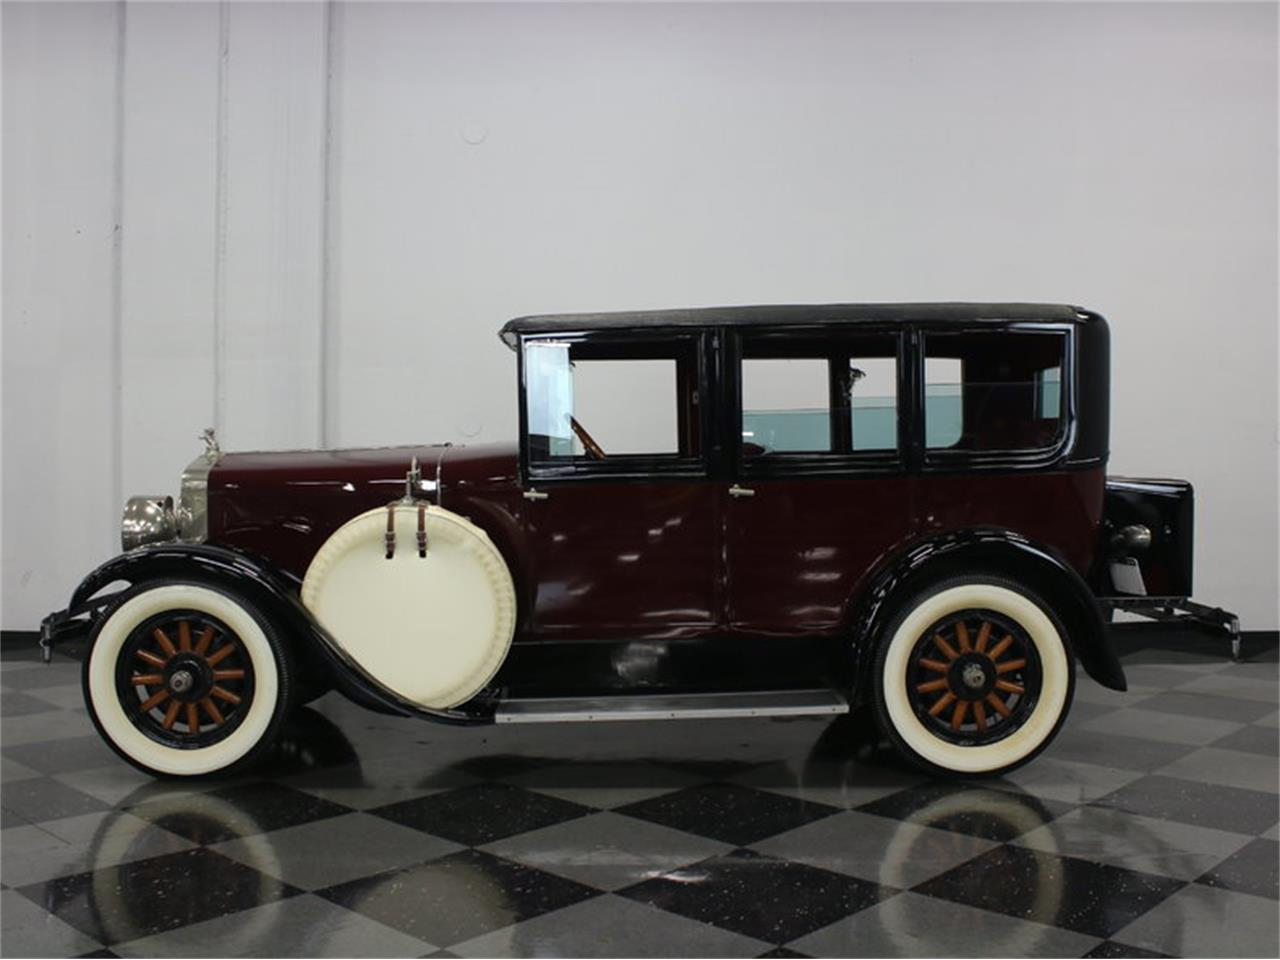 Car of the Week: 1927 Franklin